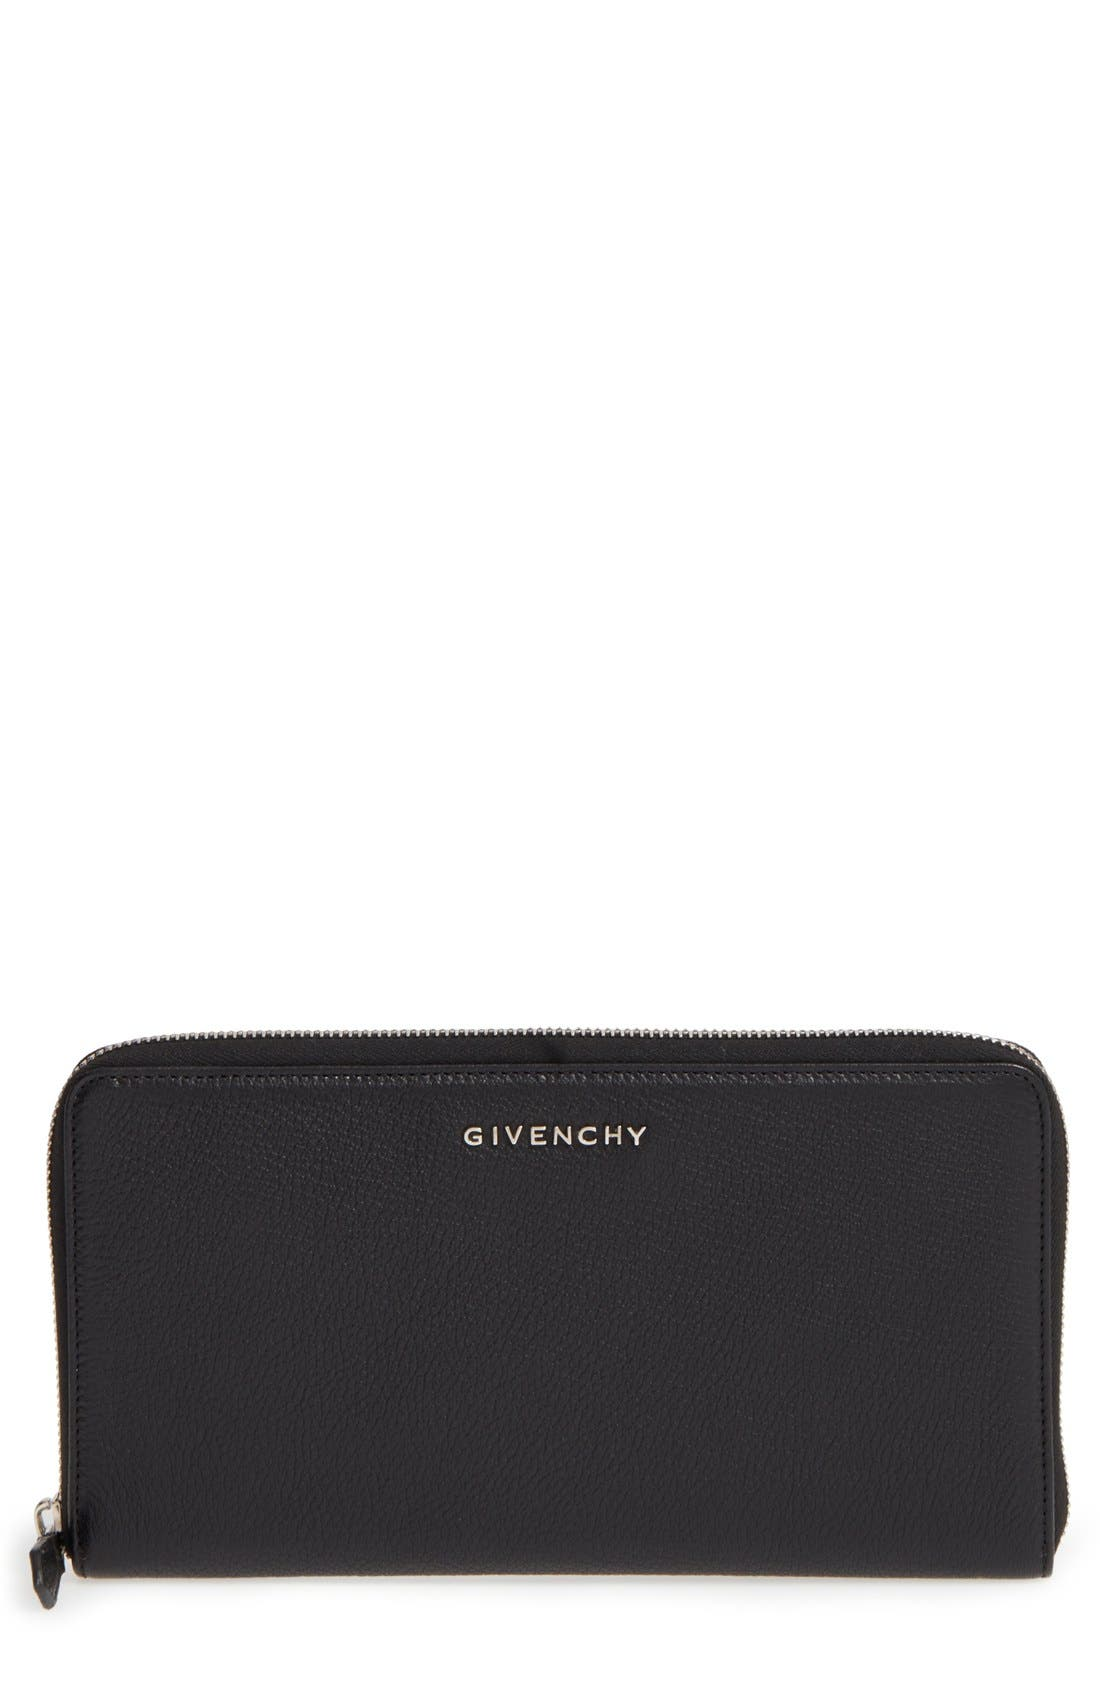 Givenchy Large Leather Travel Wallet